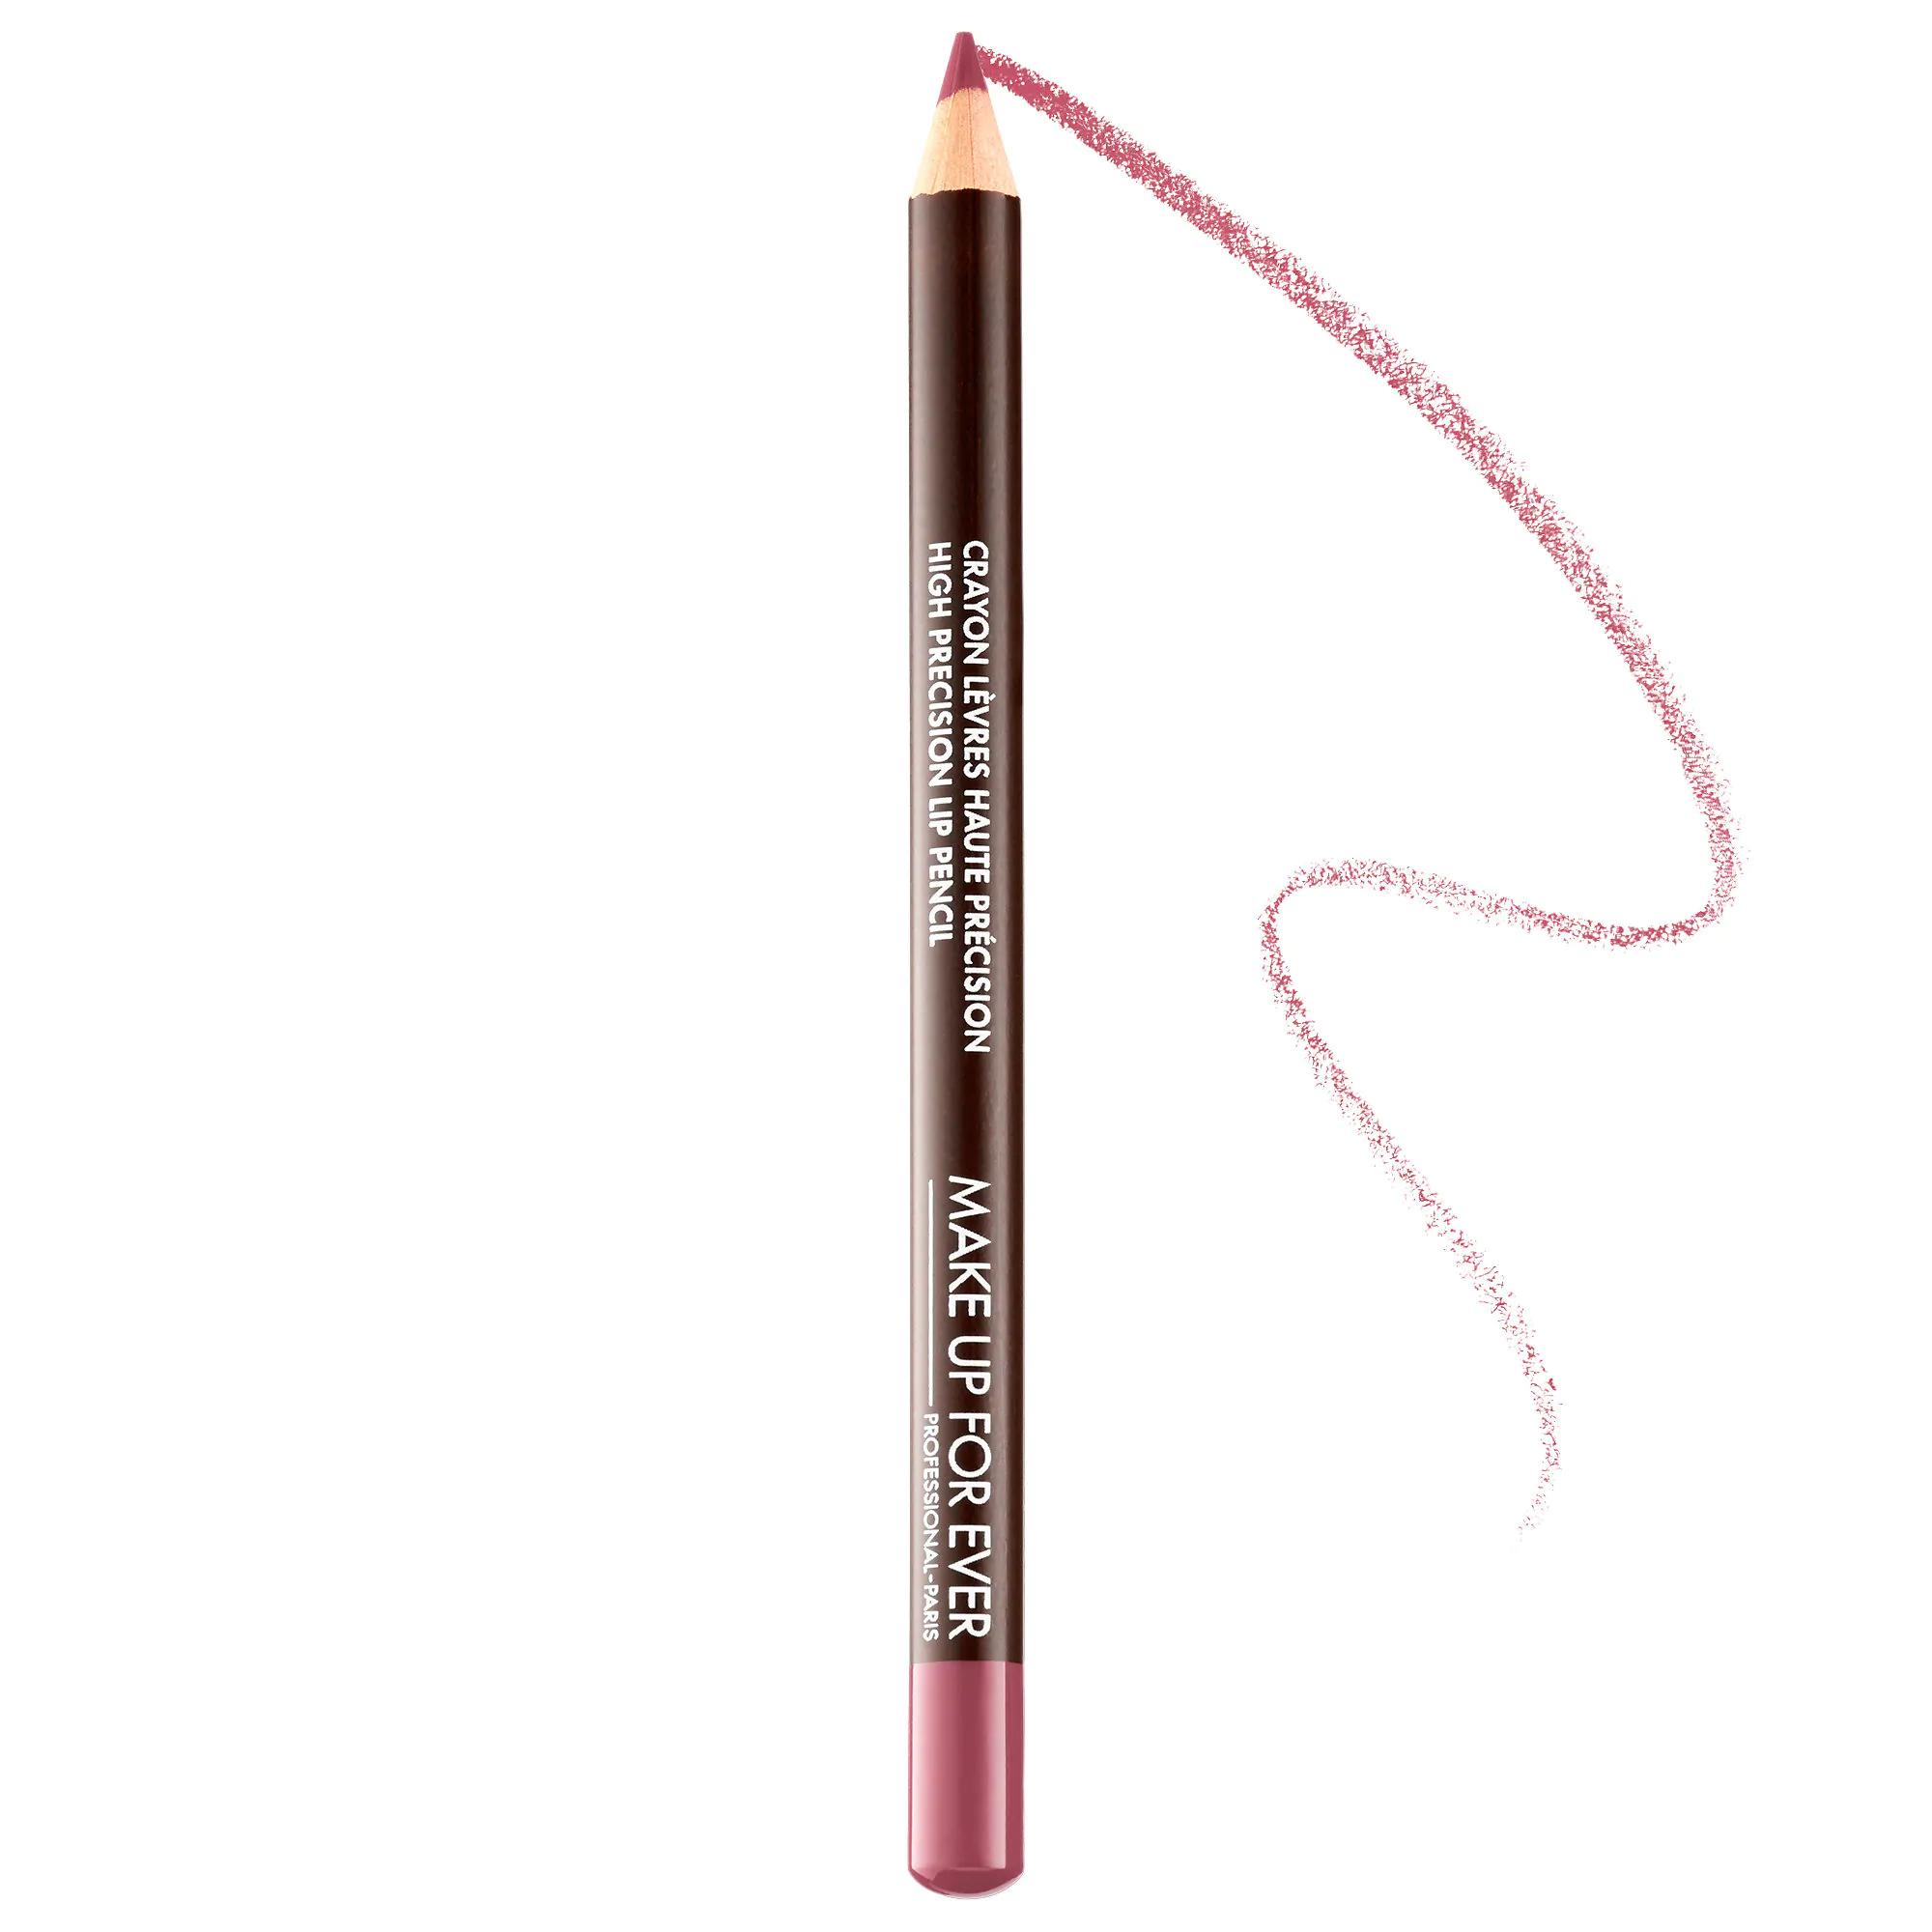 Makeup Forever High Precision Lip Pencil No. 13